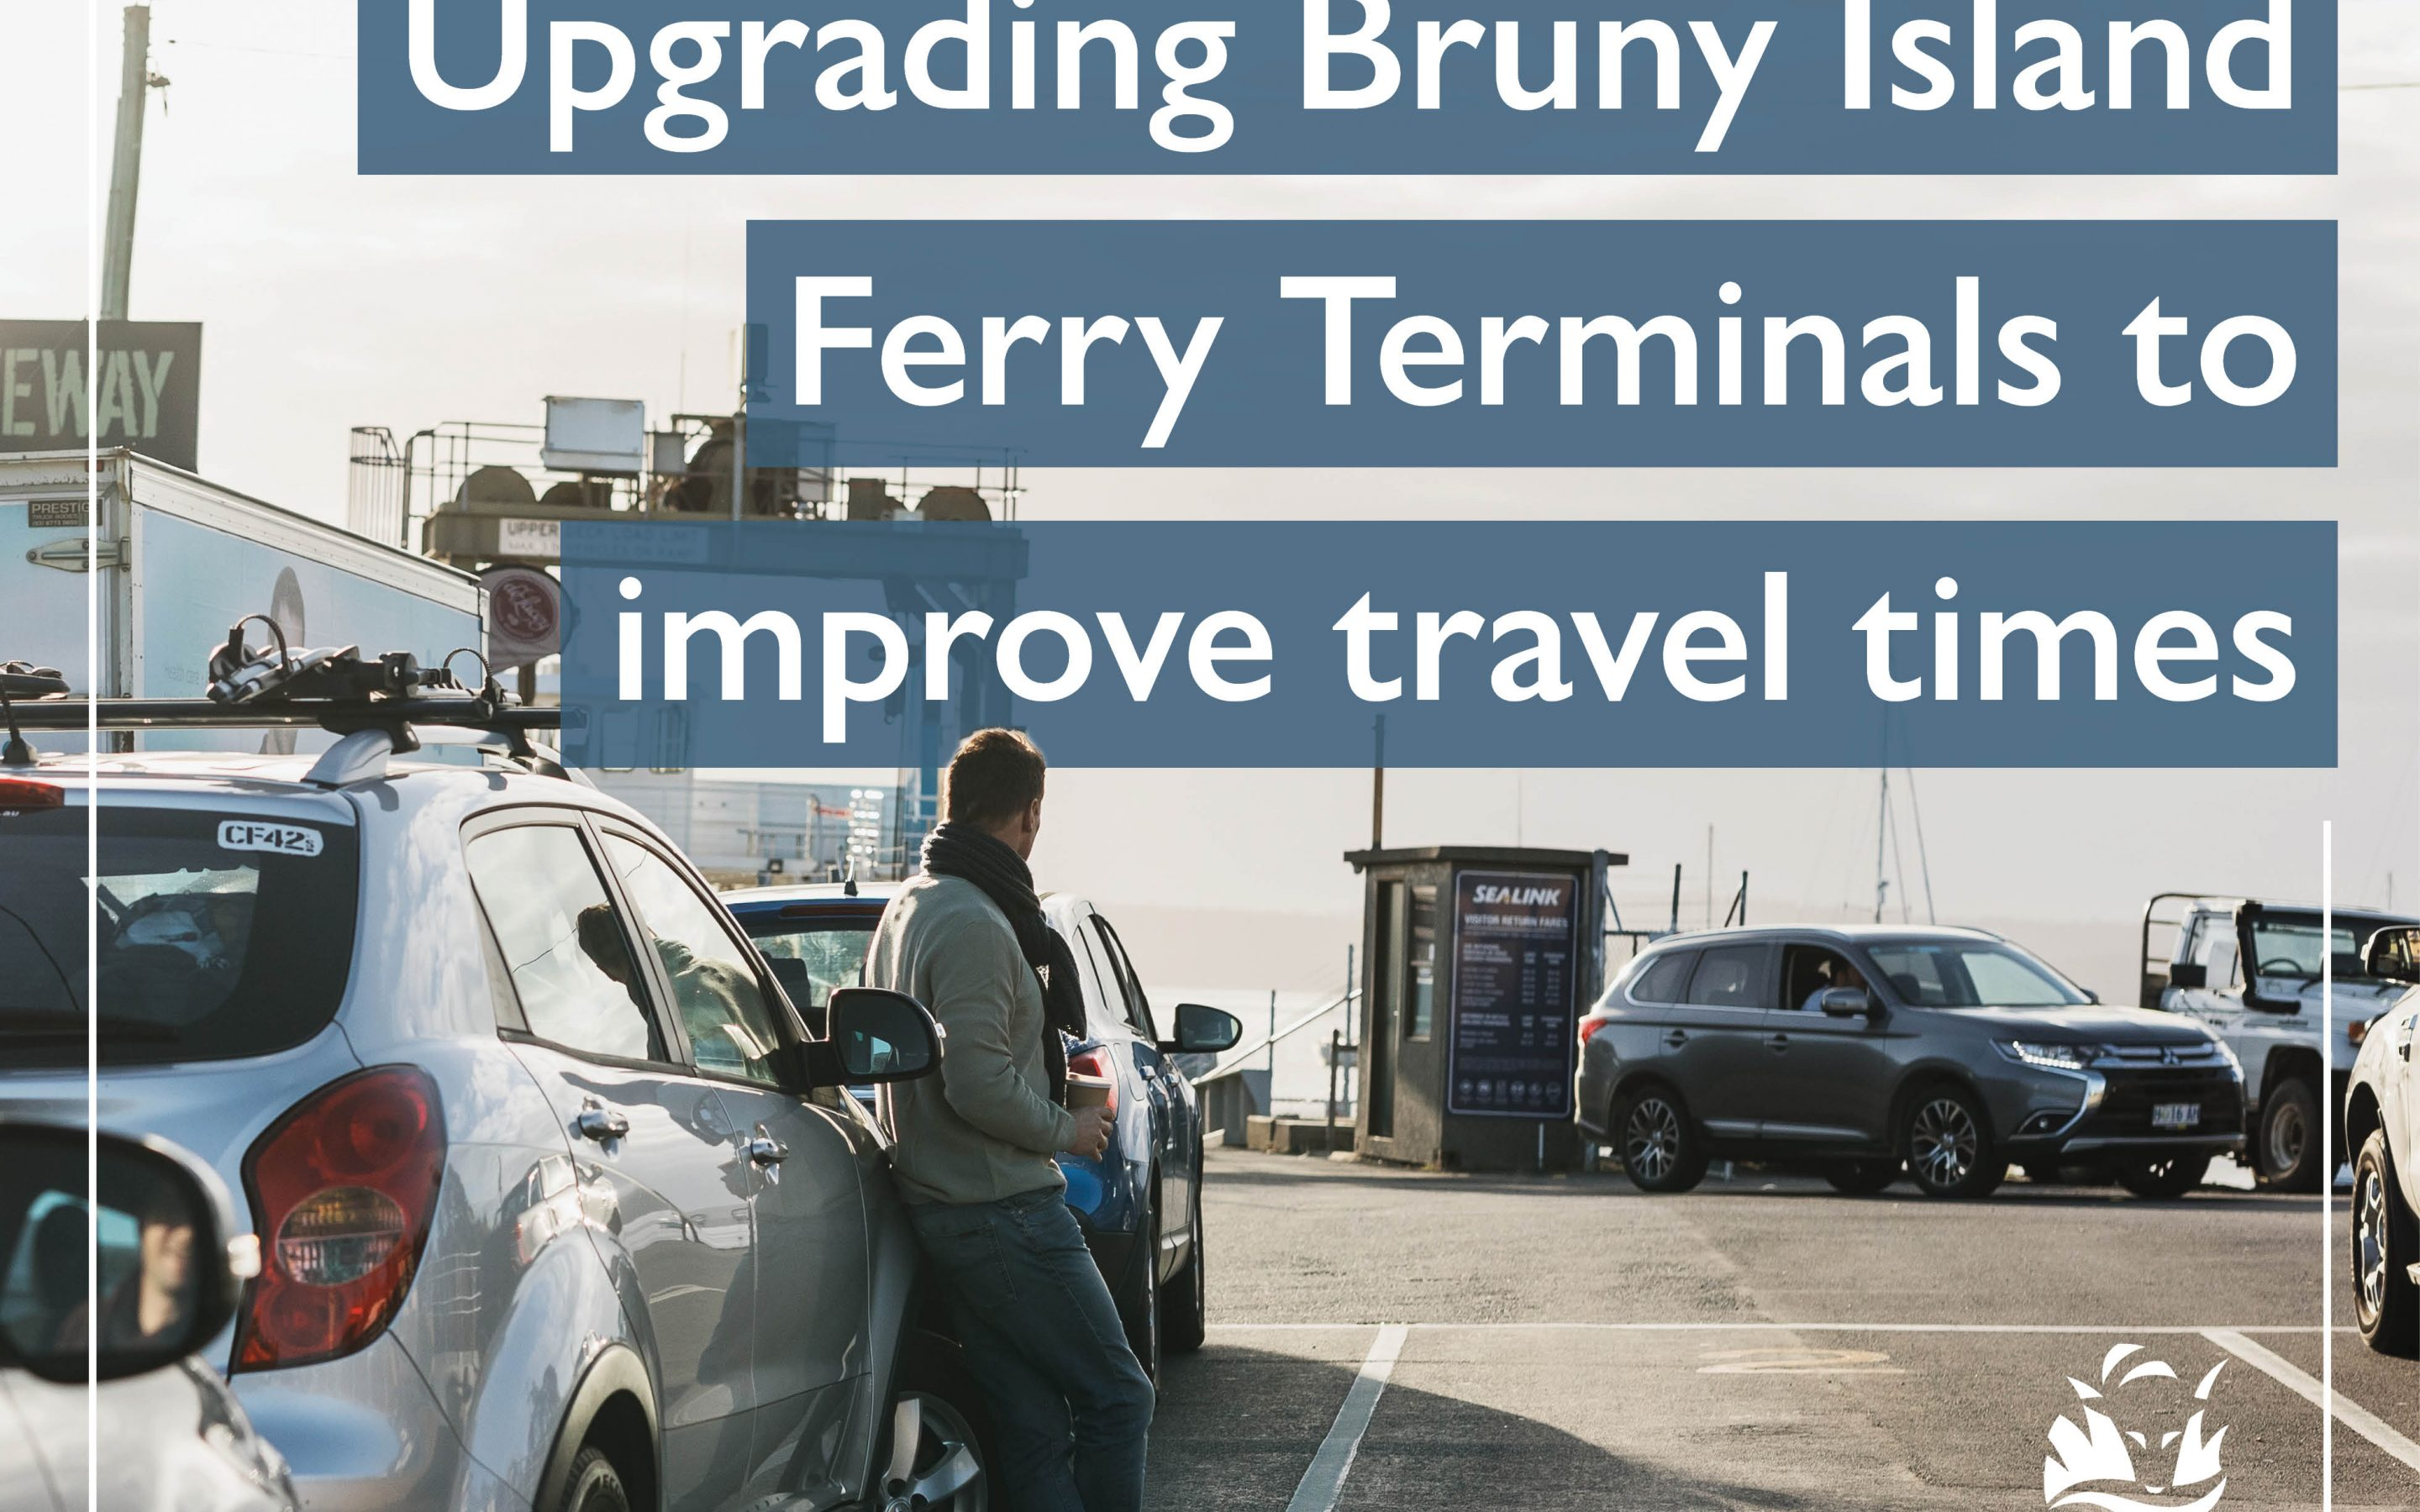 Bruny Island Ferry Terminal upgrades to improve travel times